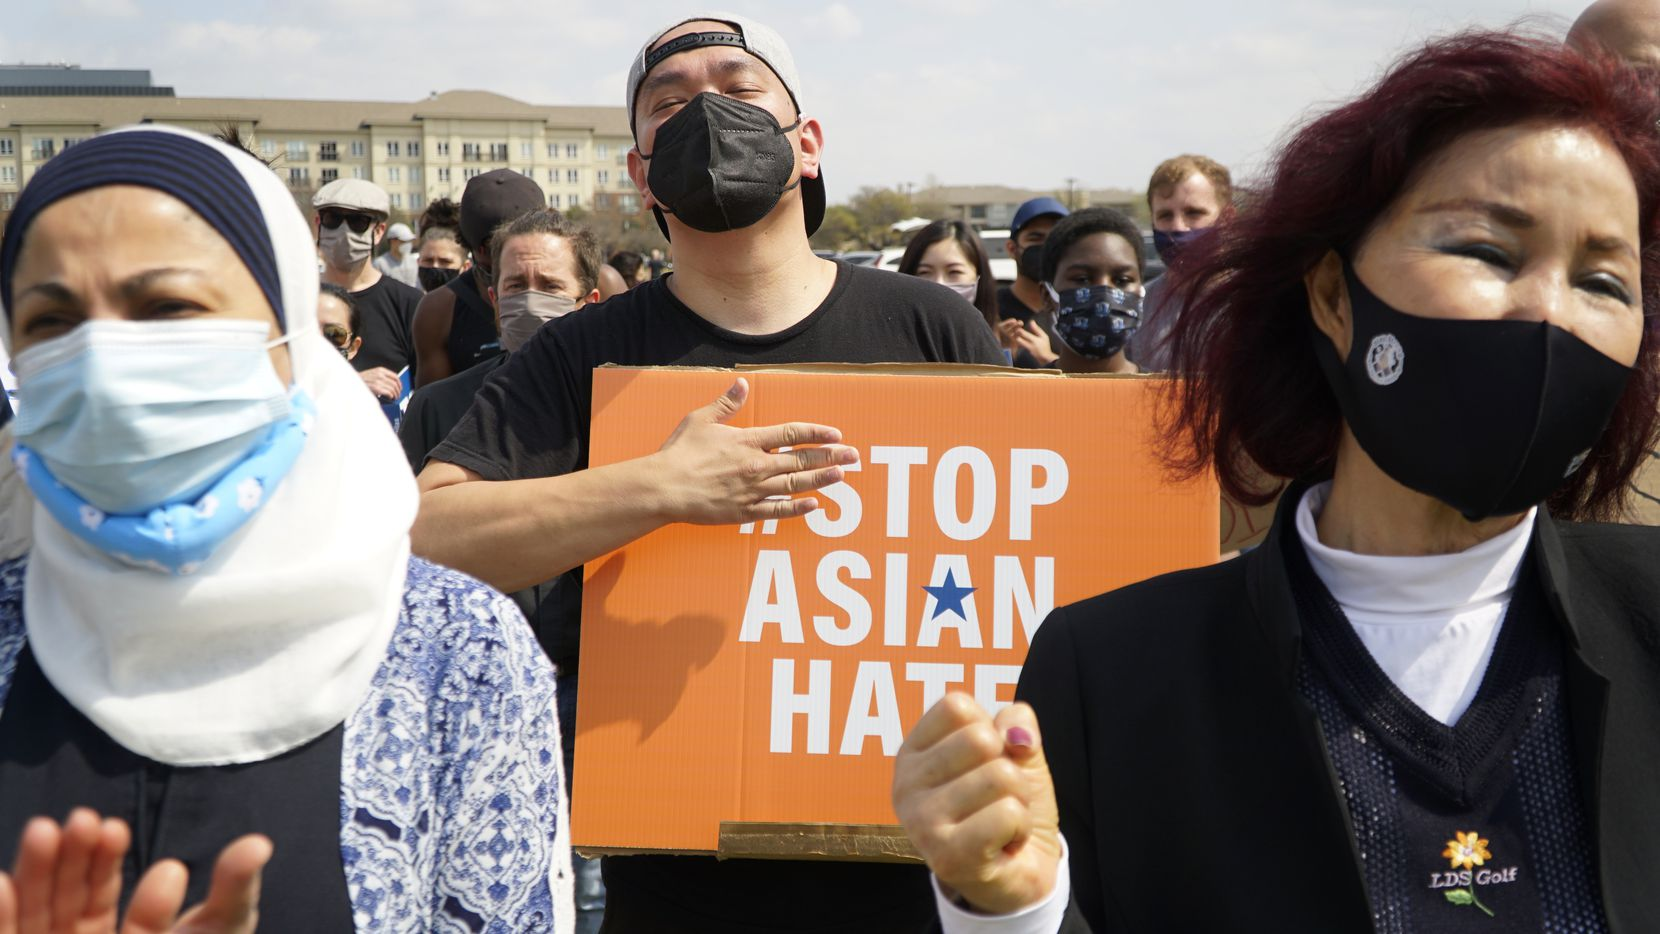 (l-r) Sabina Ibraheem, Mark Quach, and Kilja Park participated in the Stop Asian Hate rally in Dallas, Texas on Saturday, March 27, 2021. (Lawrence Jenkins/Special Contributor)